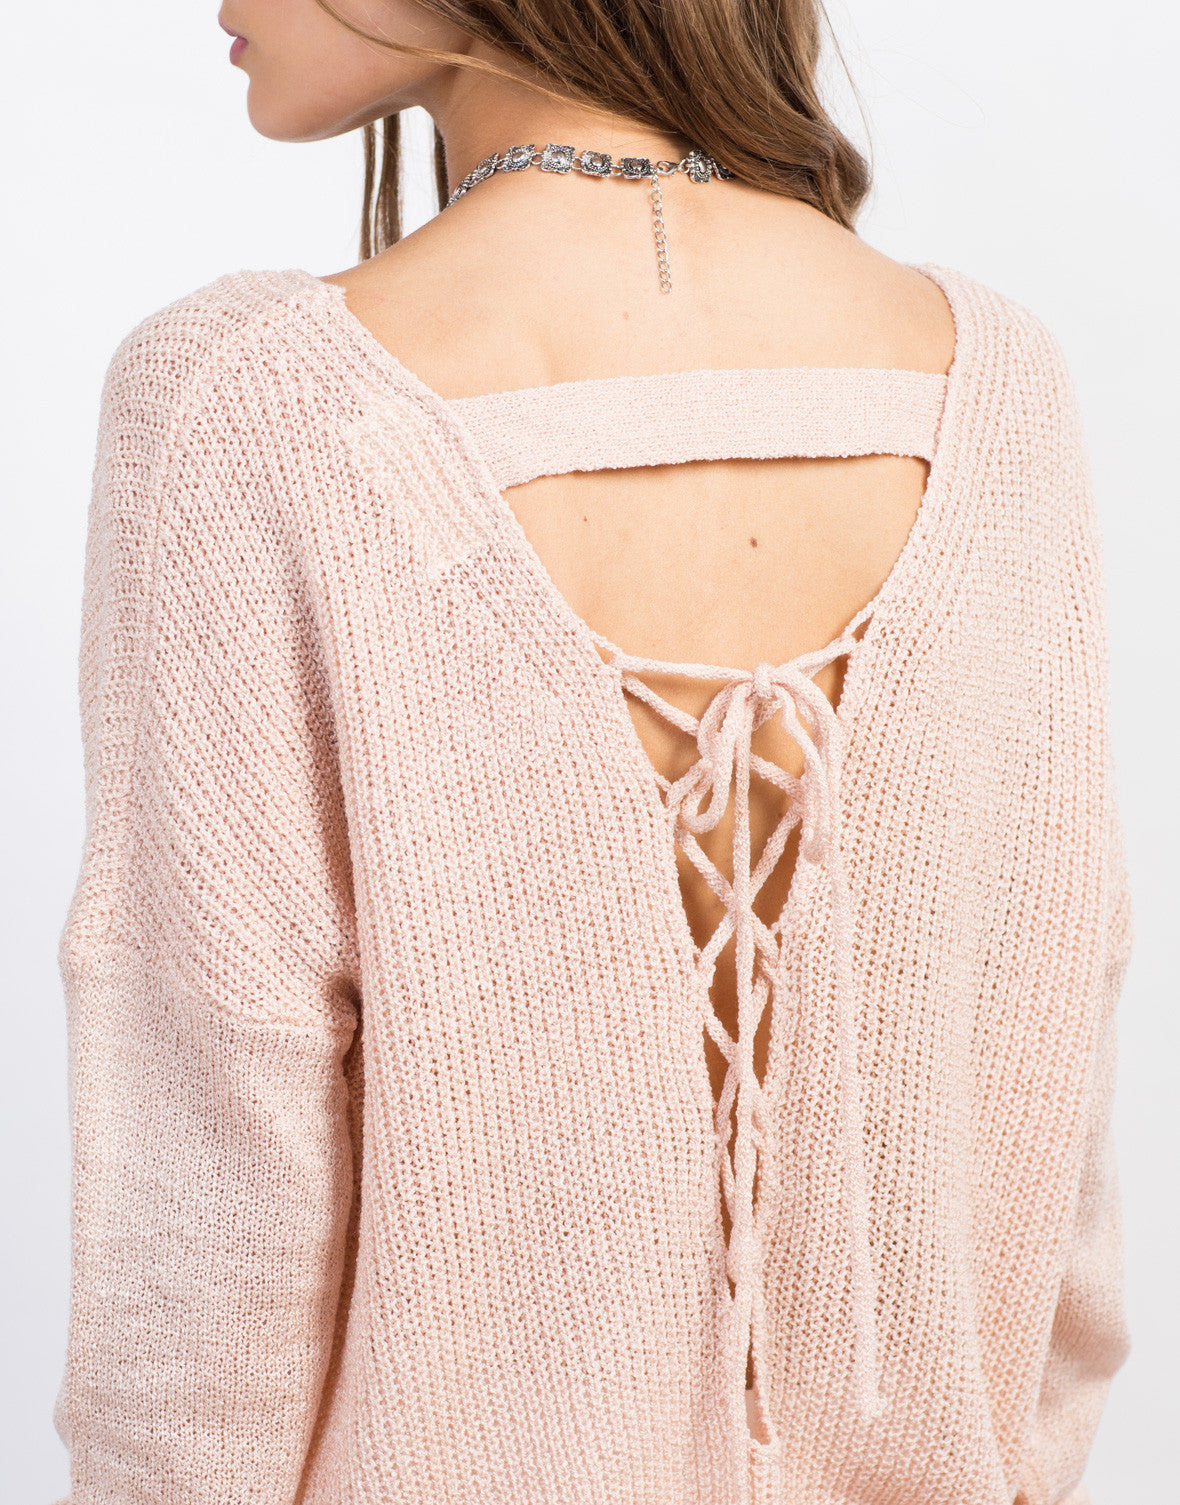 Detail of Lace-Up Back Knit Sweater